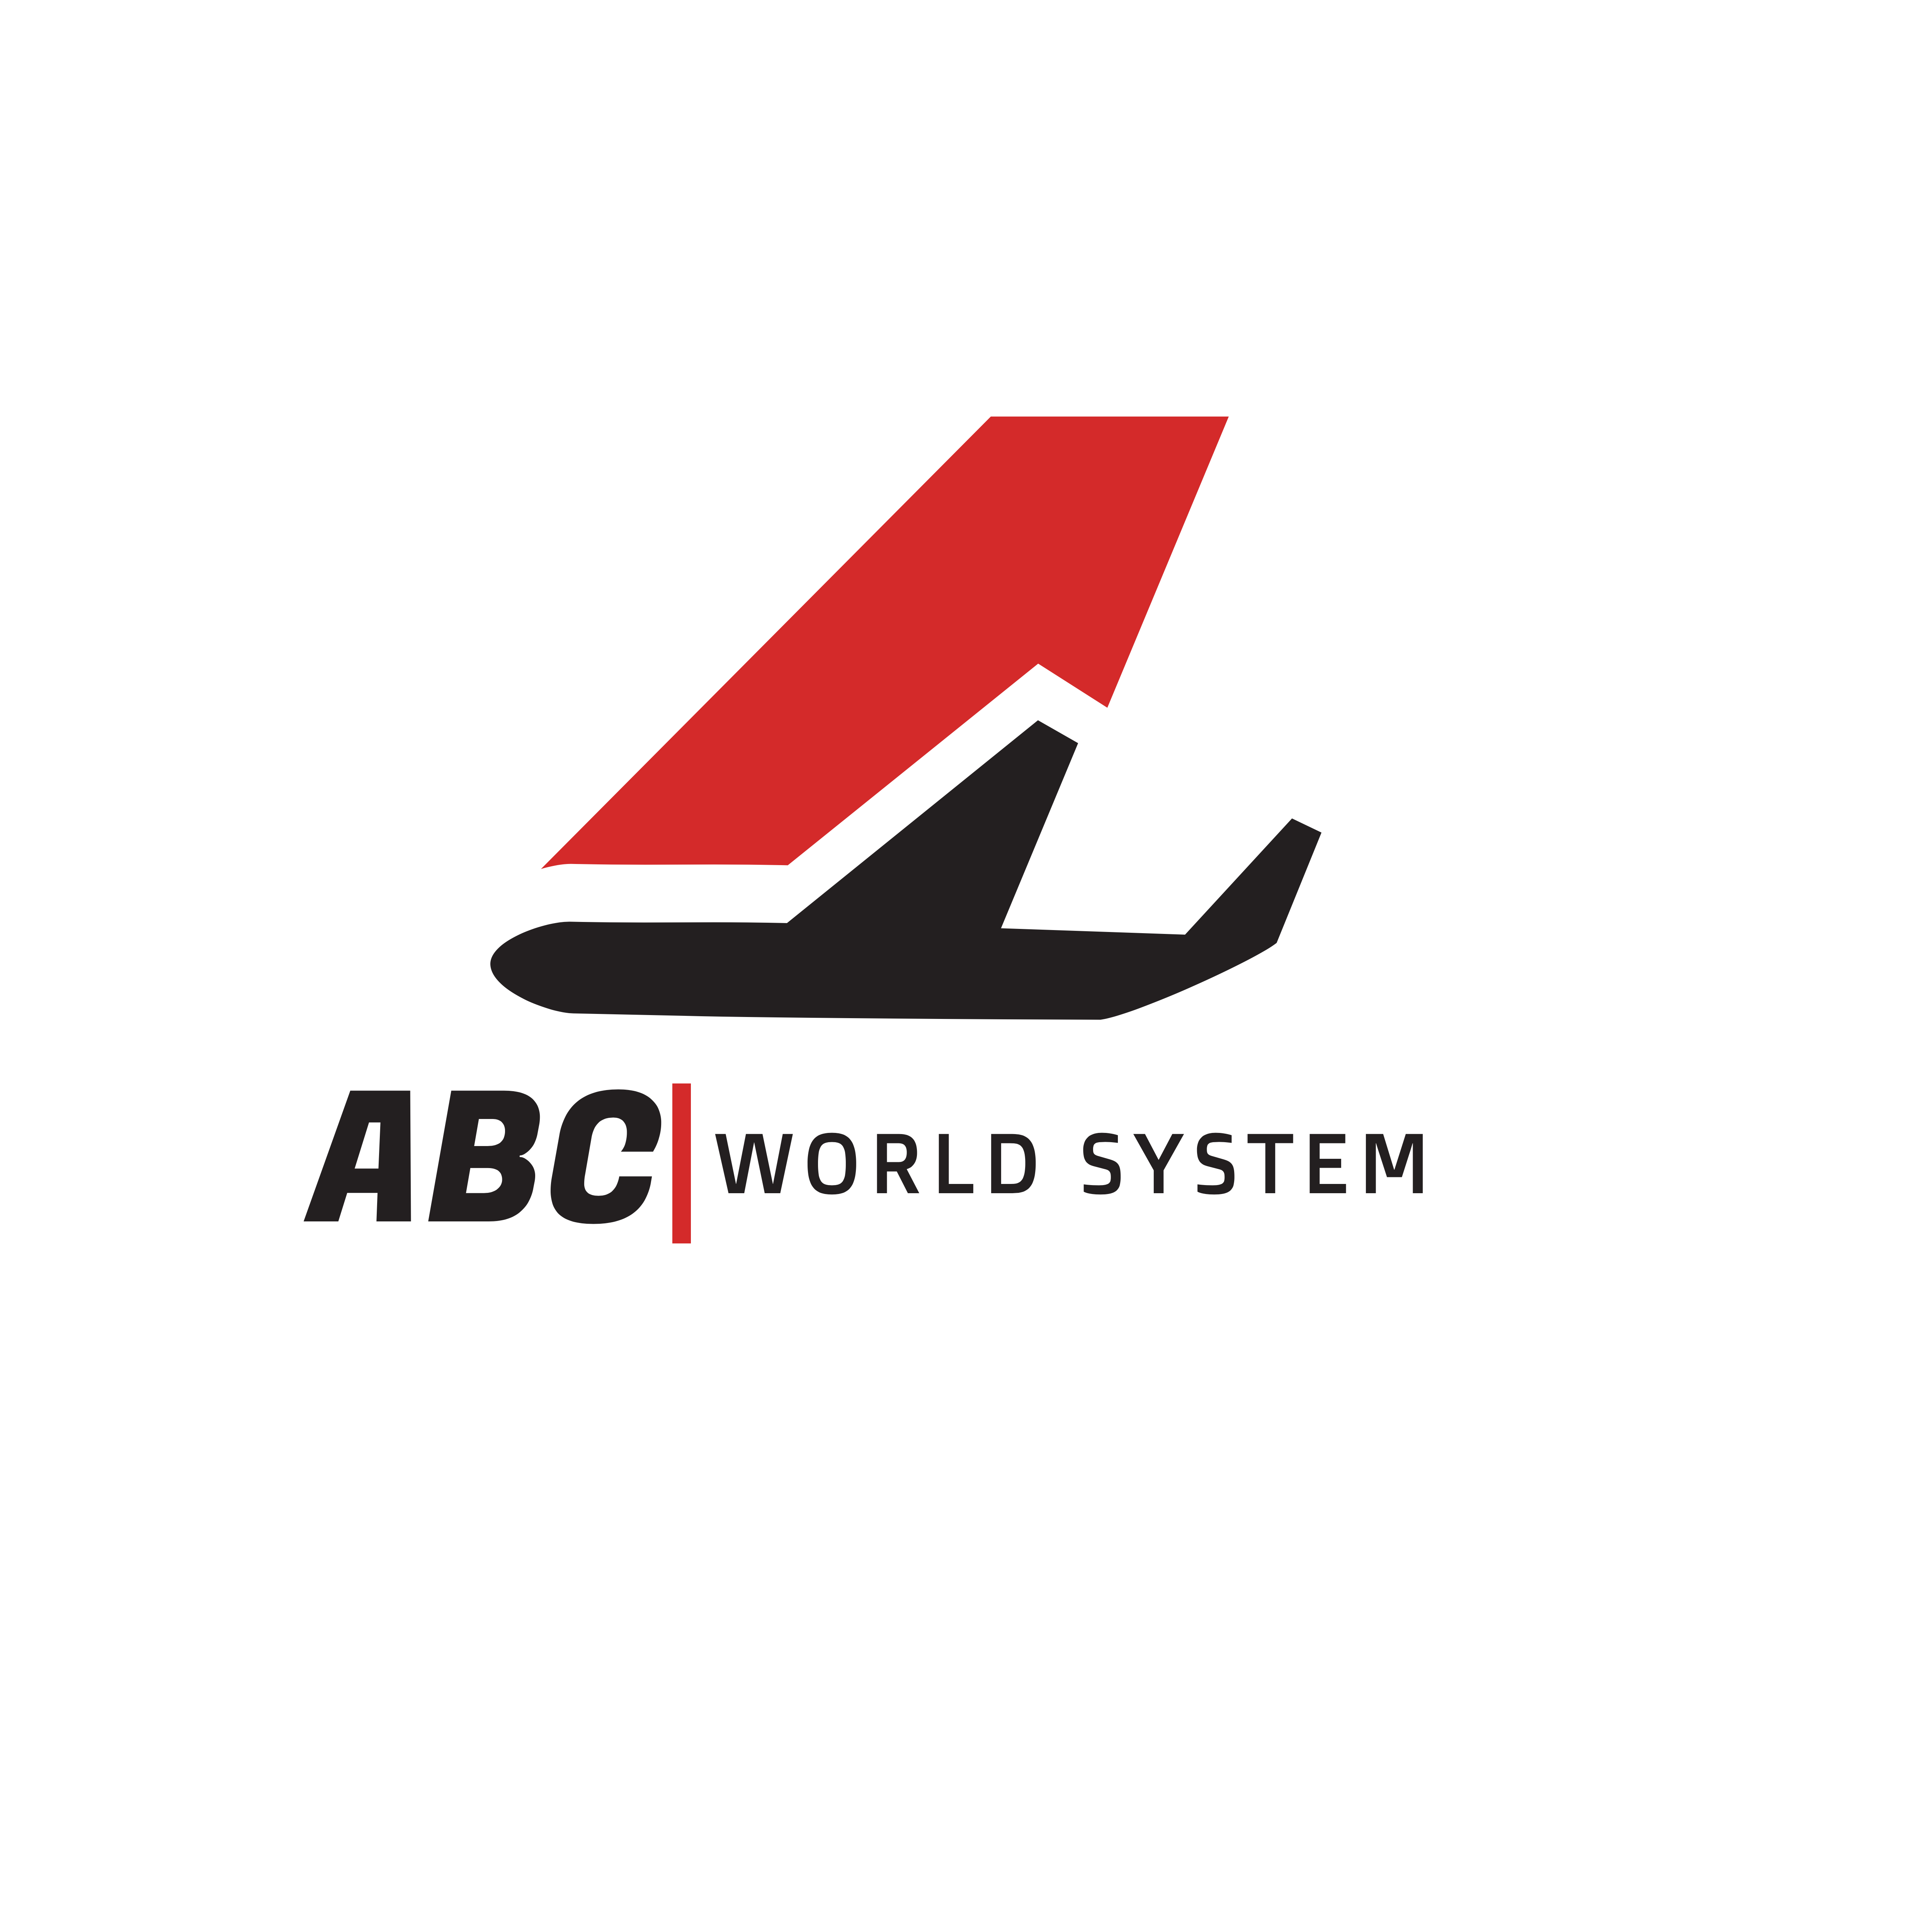 ABC World System